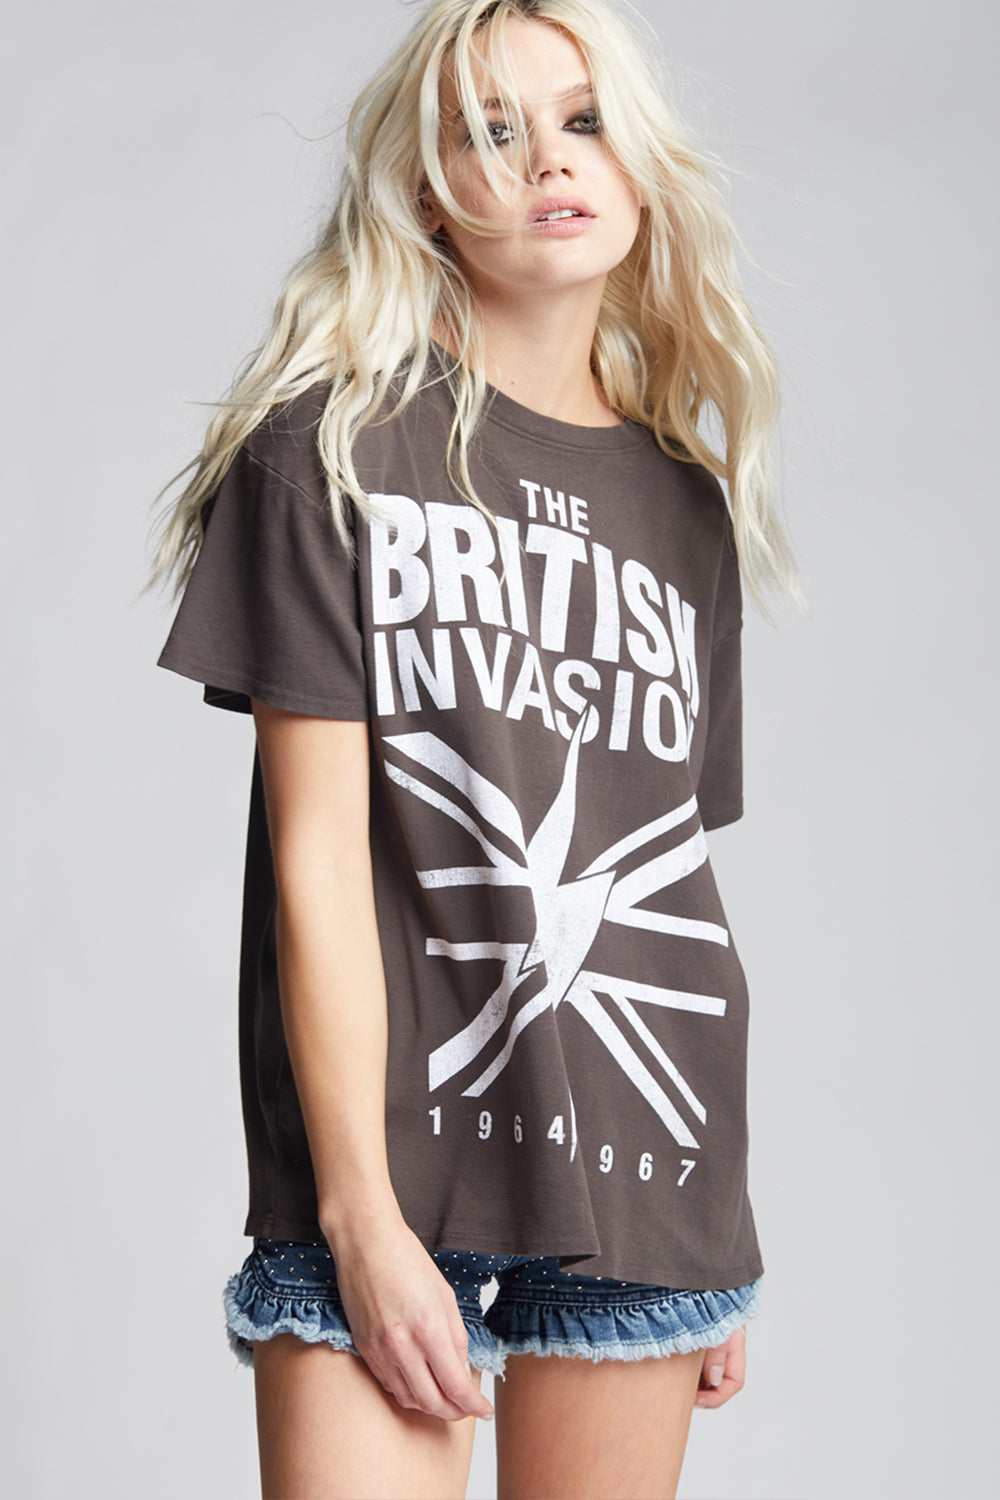 1967 British Invasion Tour Tee